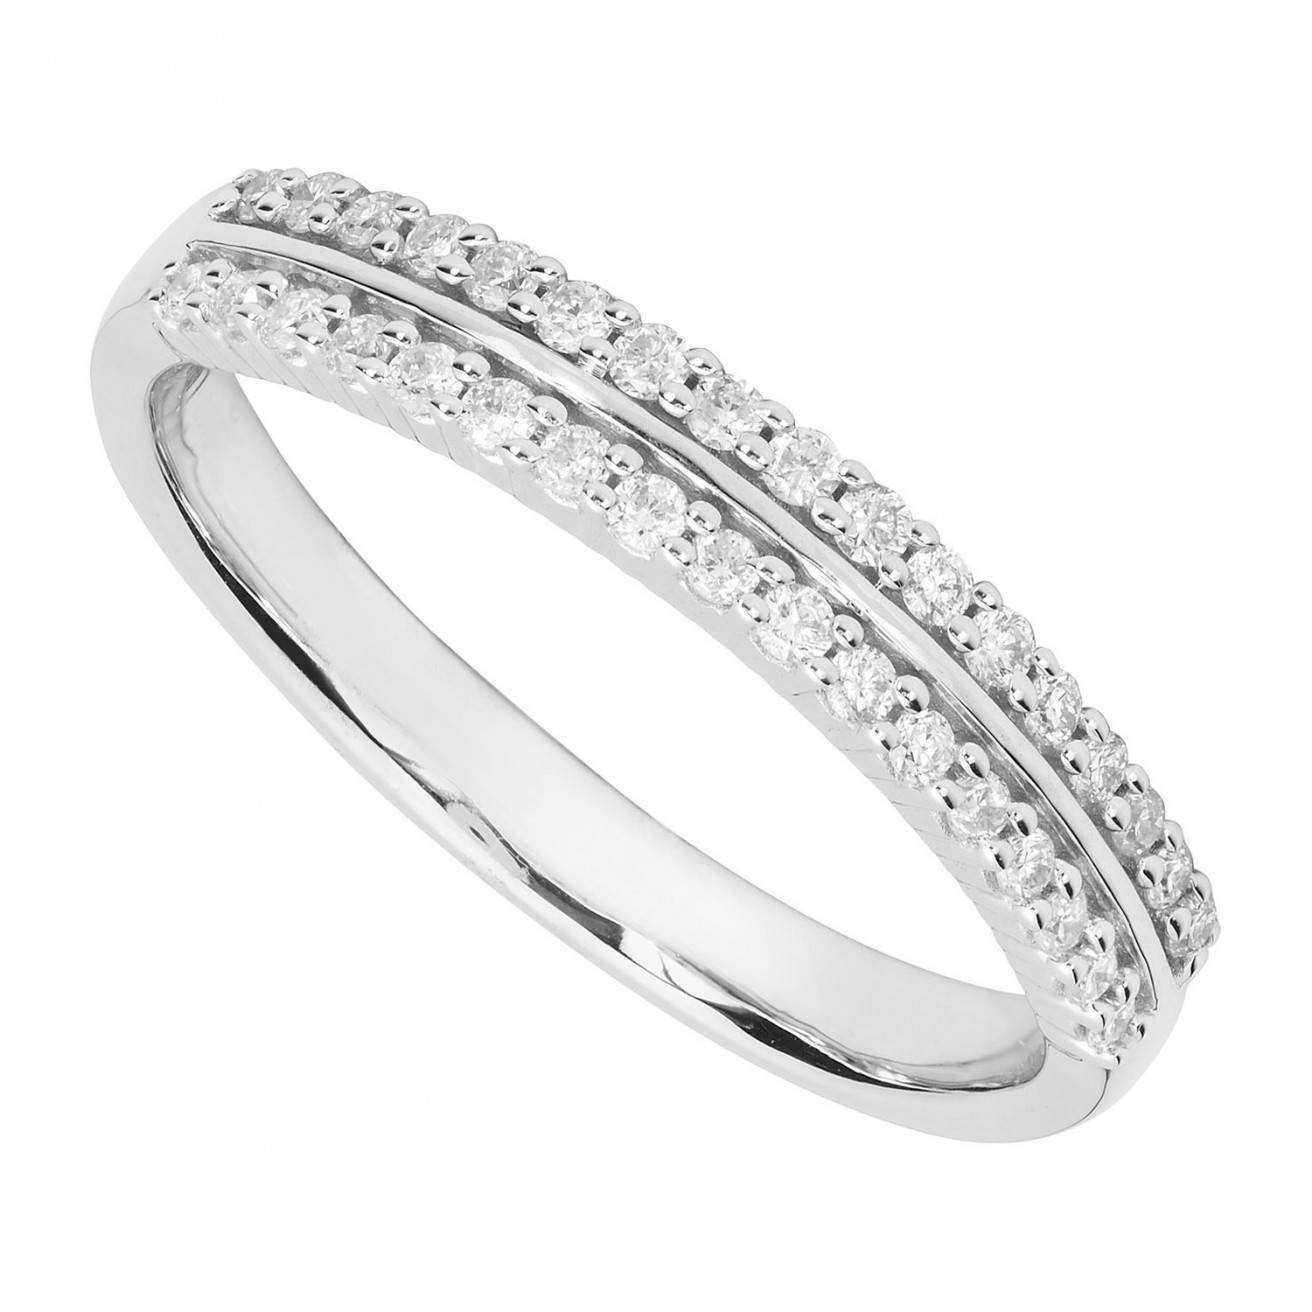 Buy White Gold Wedding Rings Online – Fraser Hart With Regard To White Gold And Diamond Wedding Rings (View 5 of 15)